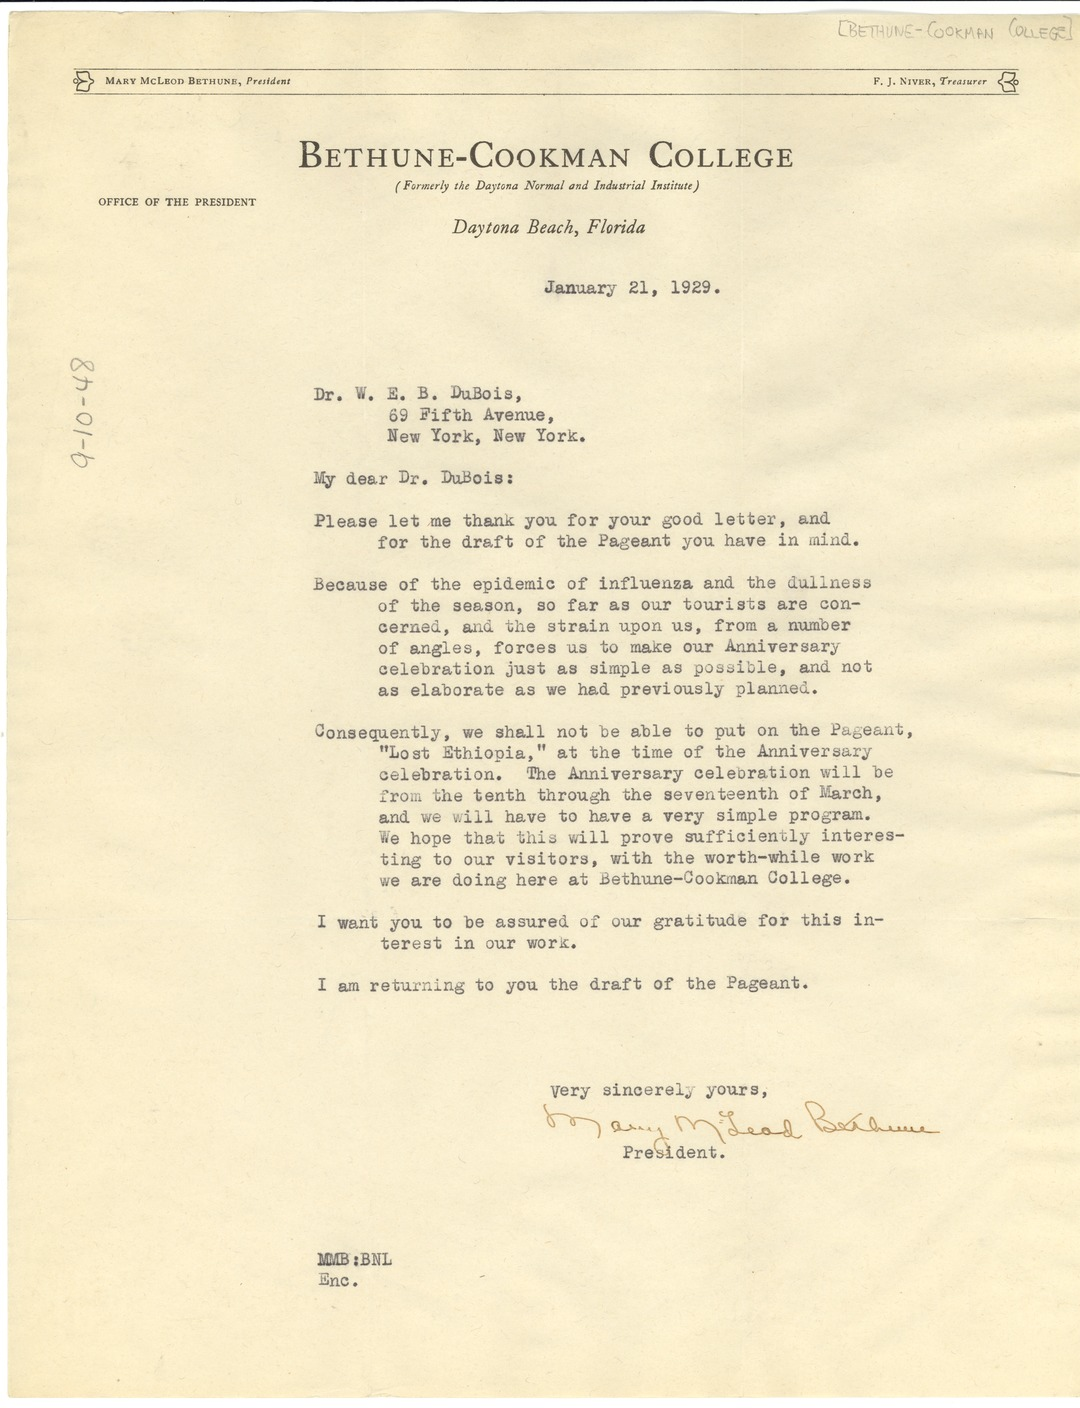 Letter From Mary Mcleod Bethune To W E B Du Bois